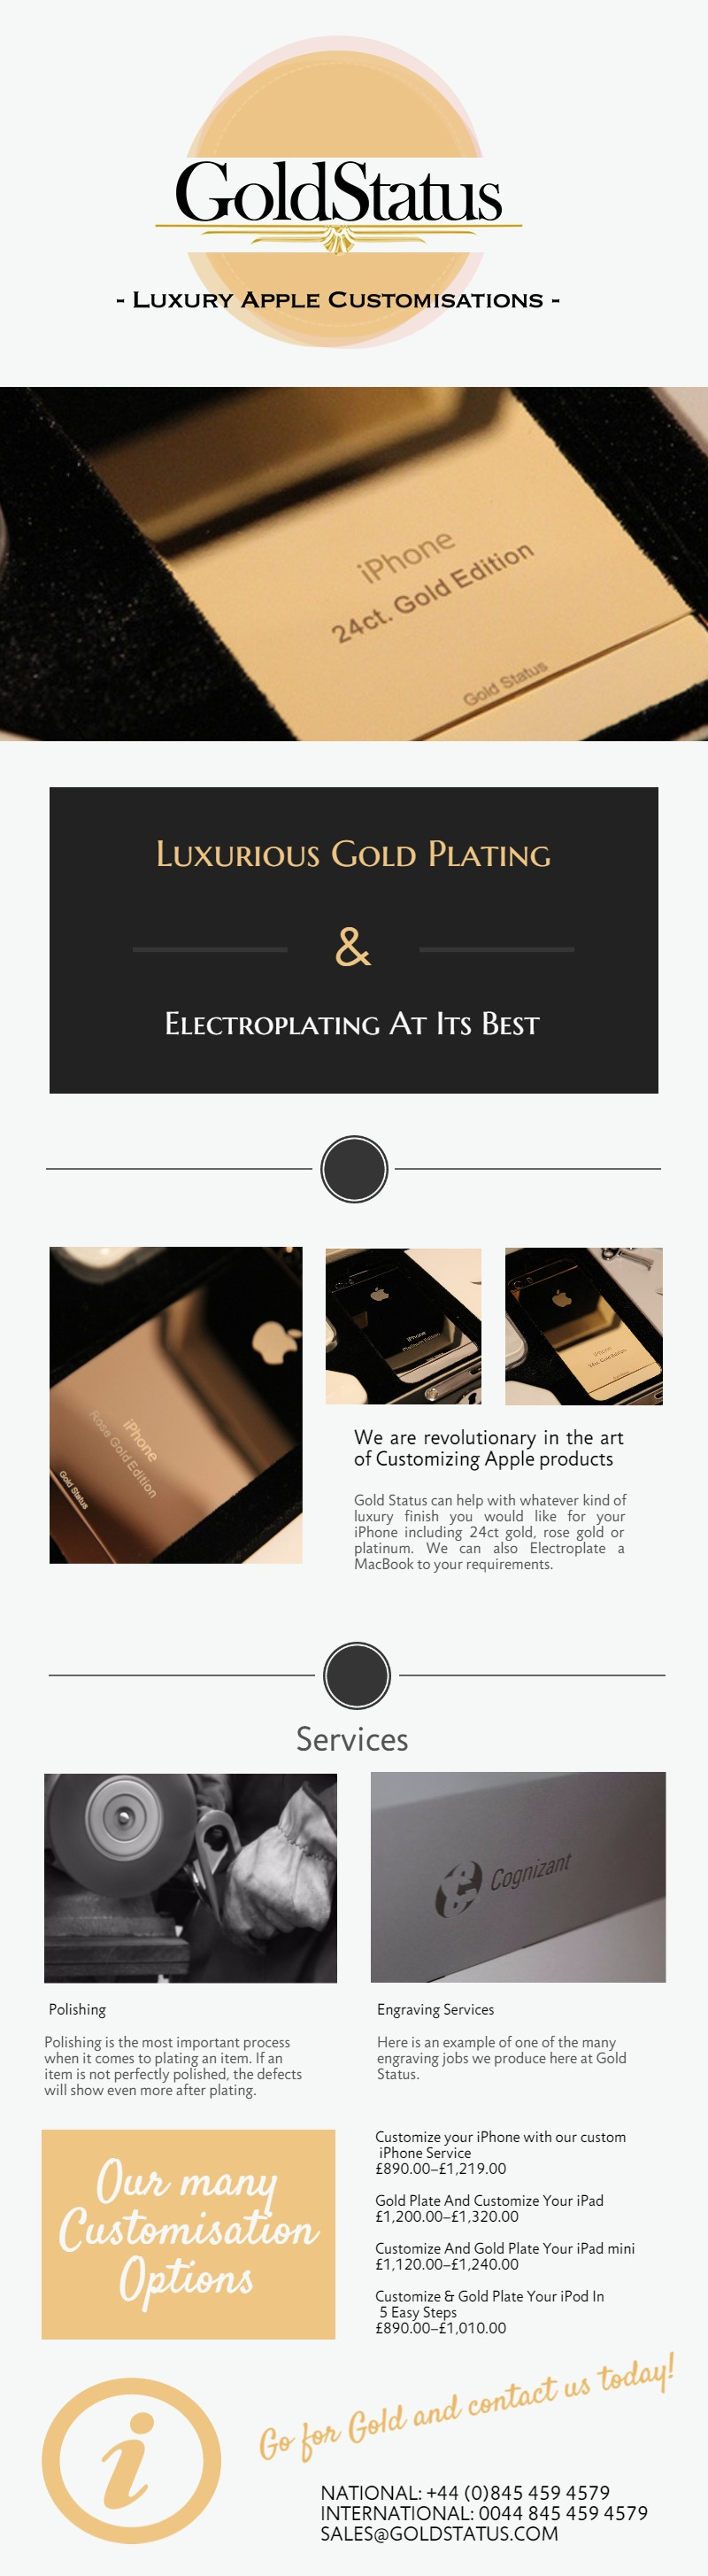 Gold Status. Deluxe and prestige, an inspiration to the world of Gold Plating! We are evolutionary to the art of Customizing Apple products for individuals and businesses alike on a Global scale. From the ubiquitous 24ct gold plated iPhones,MacBook's, gold iPads and rose gold iPods to plated Artefacts, Gold Status will provide a gold plating and customization service to meet your expectations and then some budgetinfographic@gmail.com